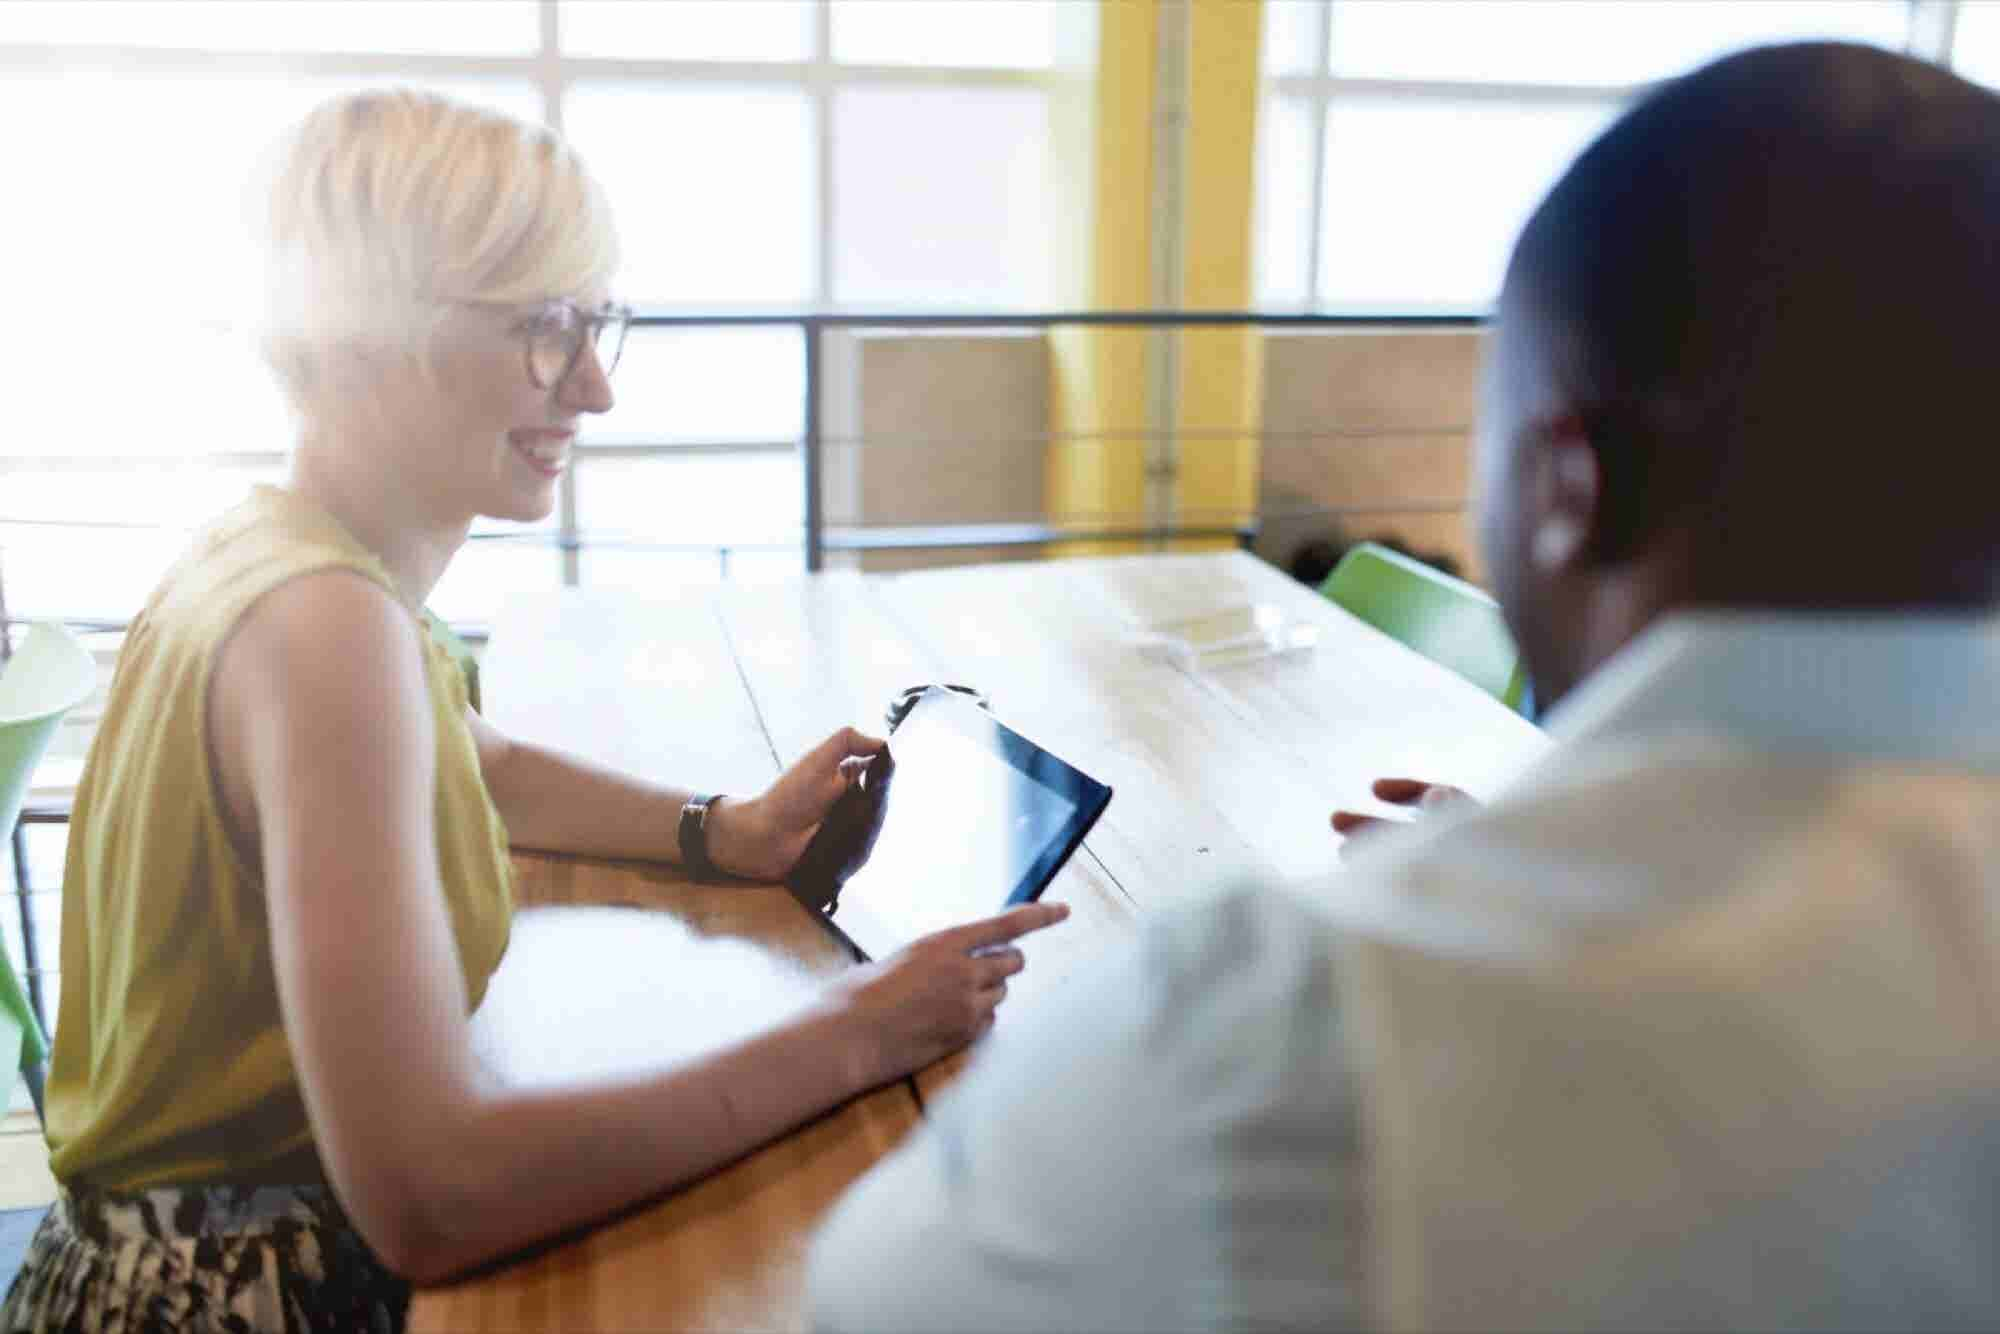 Top 5 Personality Traits Investors Look for in an Entrepreneur